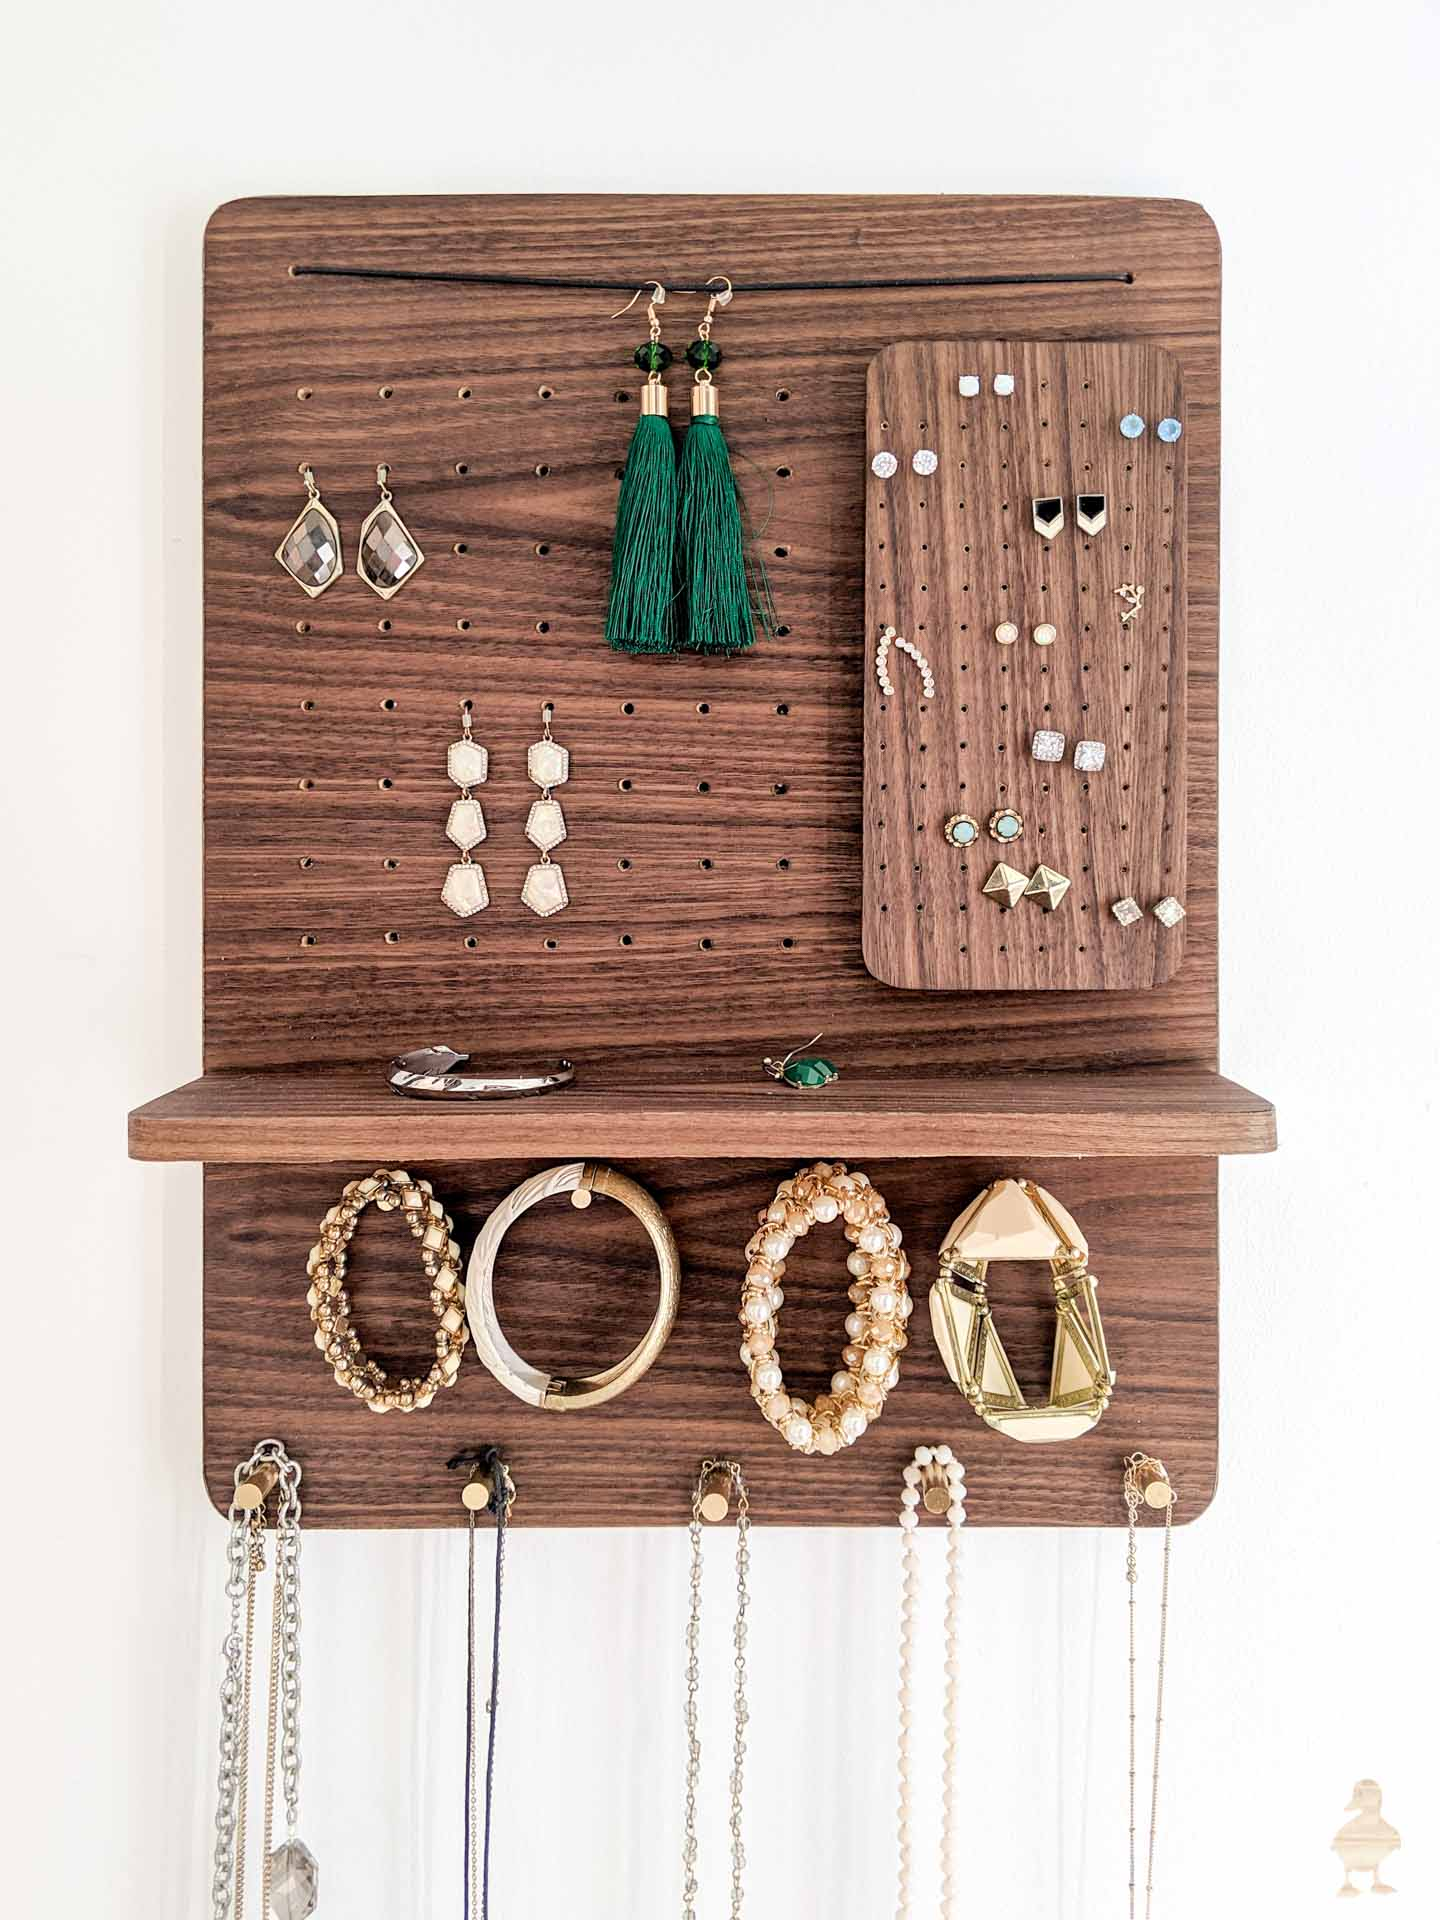 diy magnetic walnut and brass jewelry organizer idea